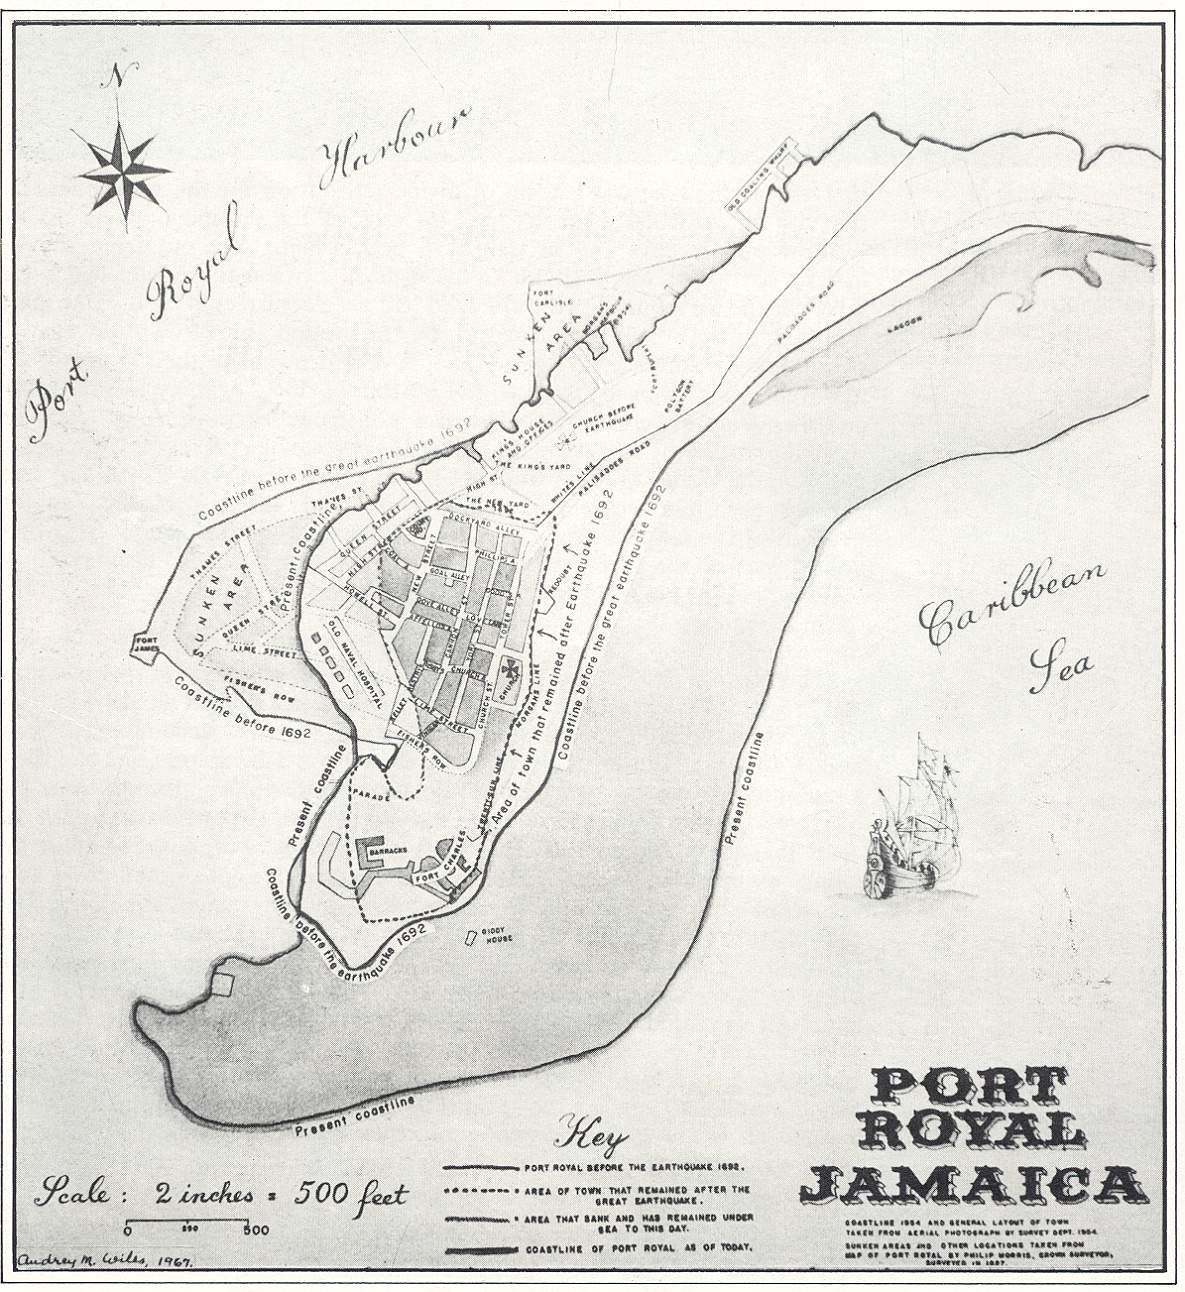 Jacob Voorthuis Diary - Jamaica political map 1968